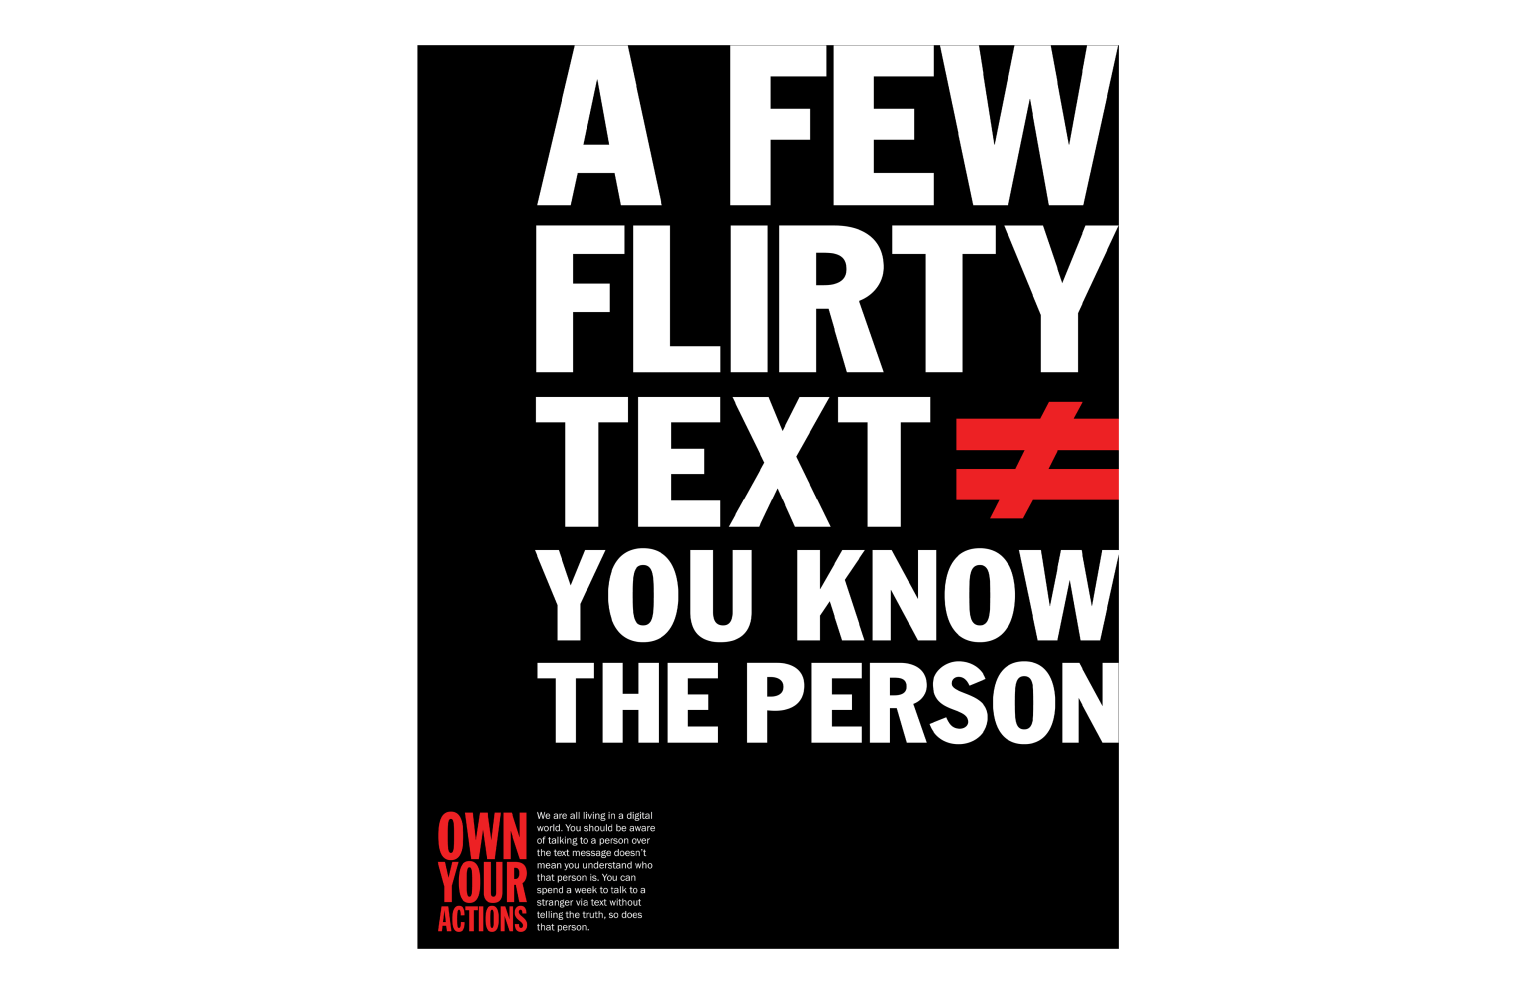 OWN YOUR ACTIONS POSTERS